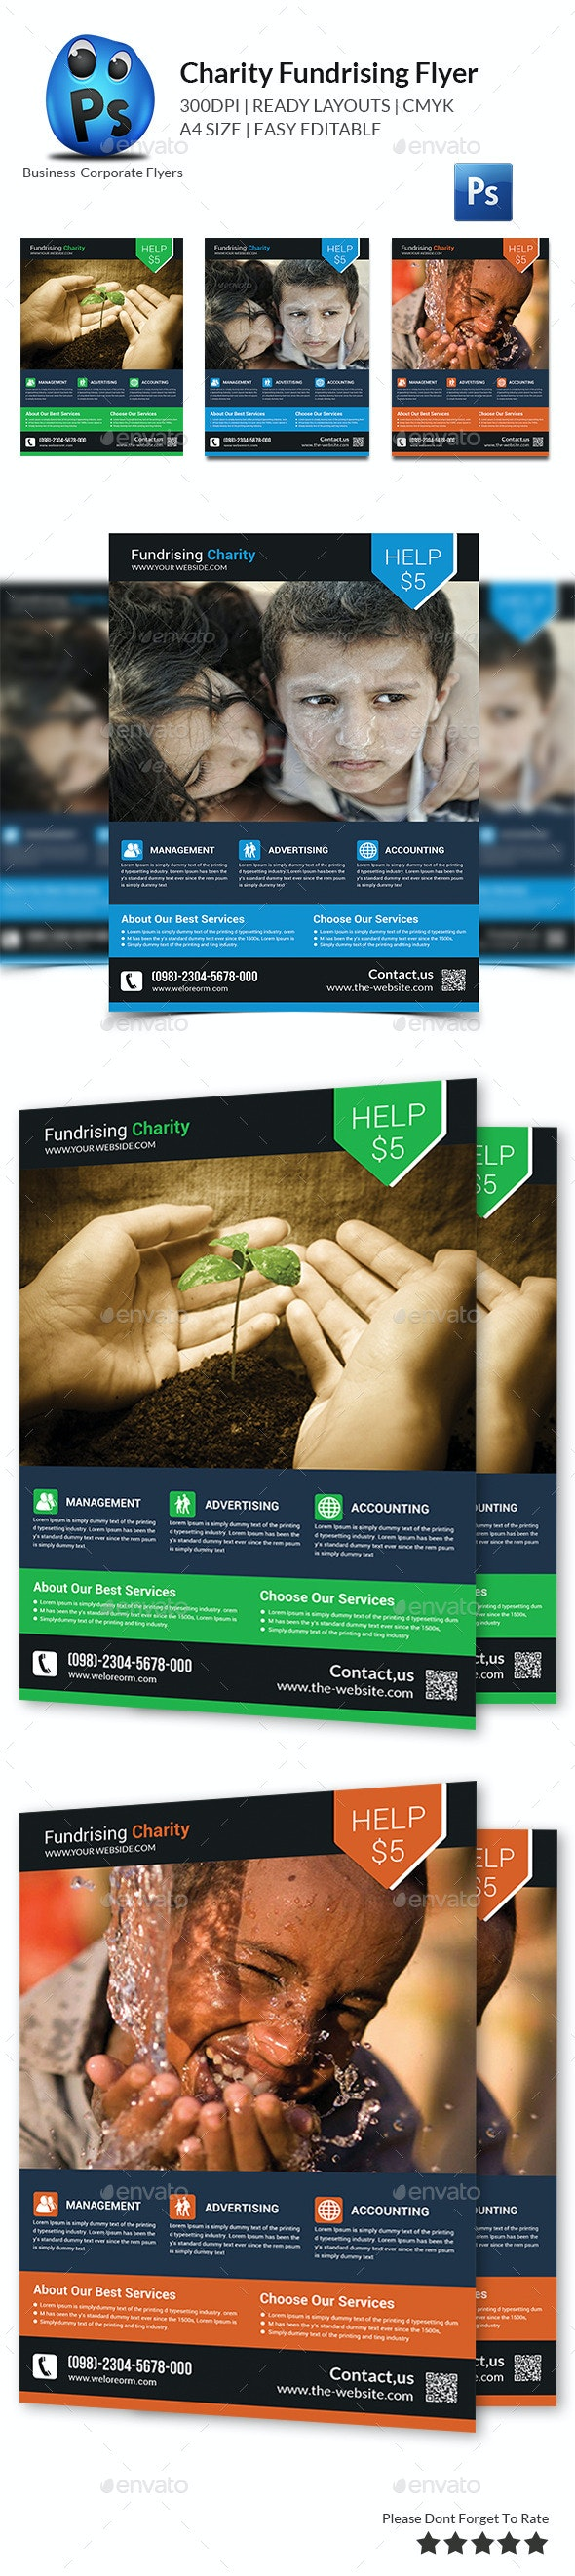 Charity Fundraising Flyer Templates - Corporate Flyers